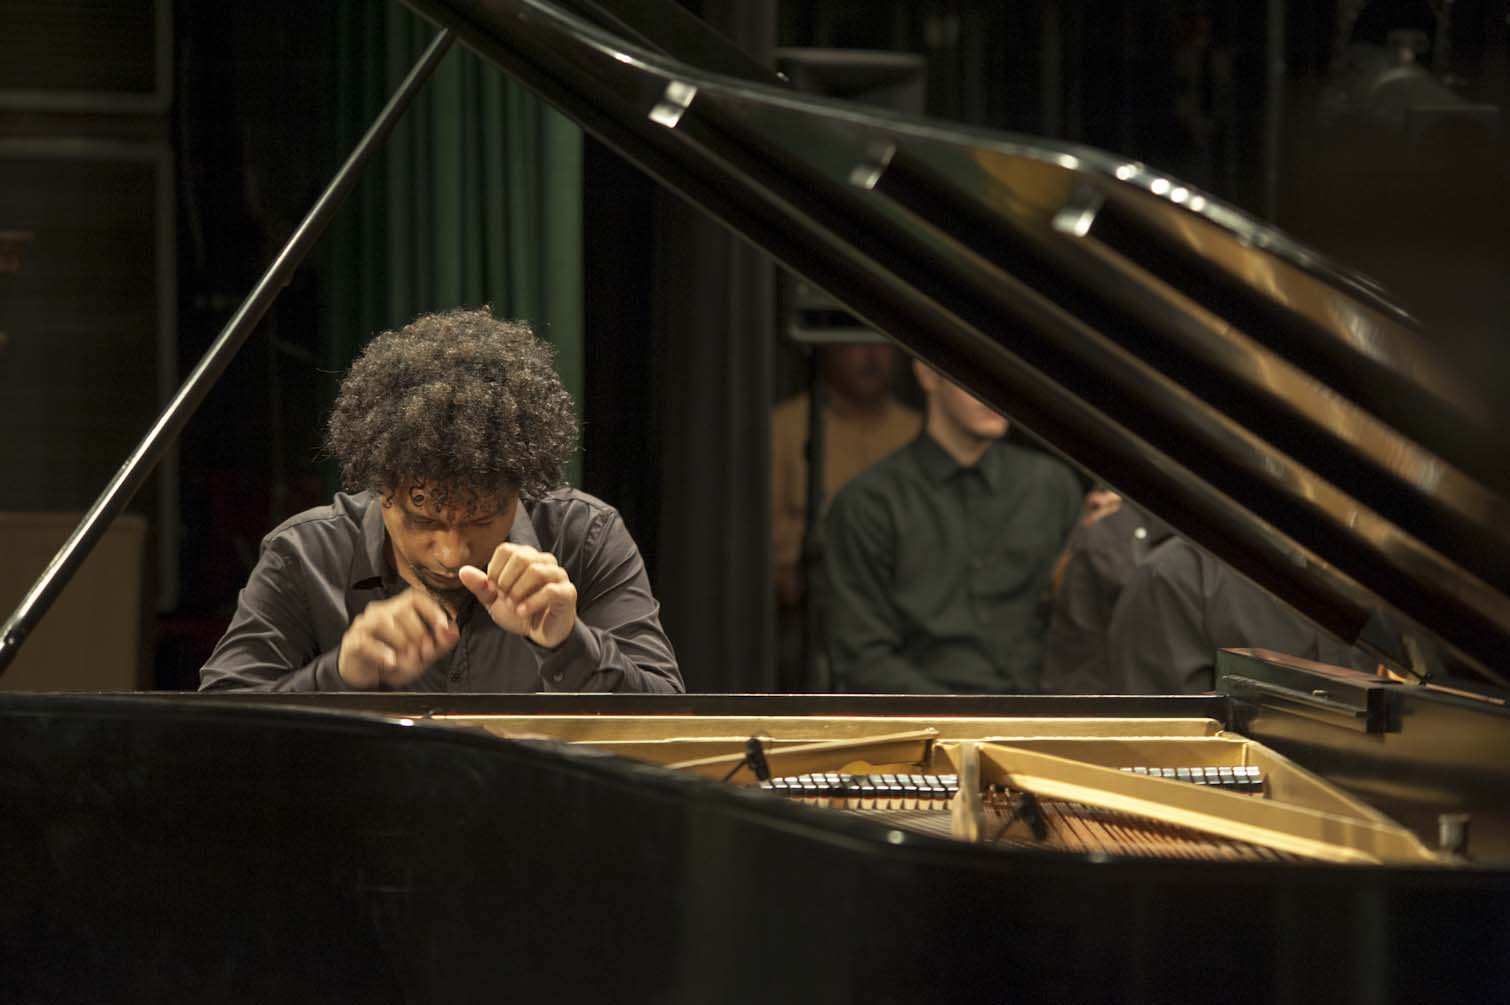 Aldo Lopez Gavilan at work. If you want to hear his remarkable music for yourself, check out :  http://bit.ly/UTUBE-Aldo-Epilogo .